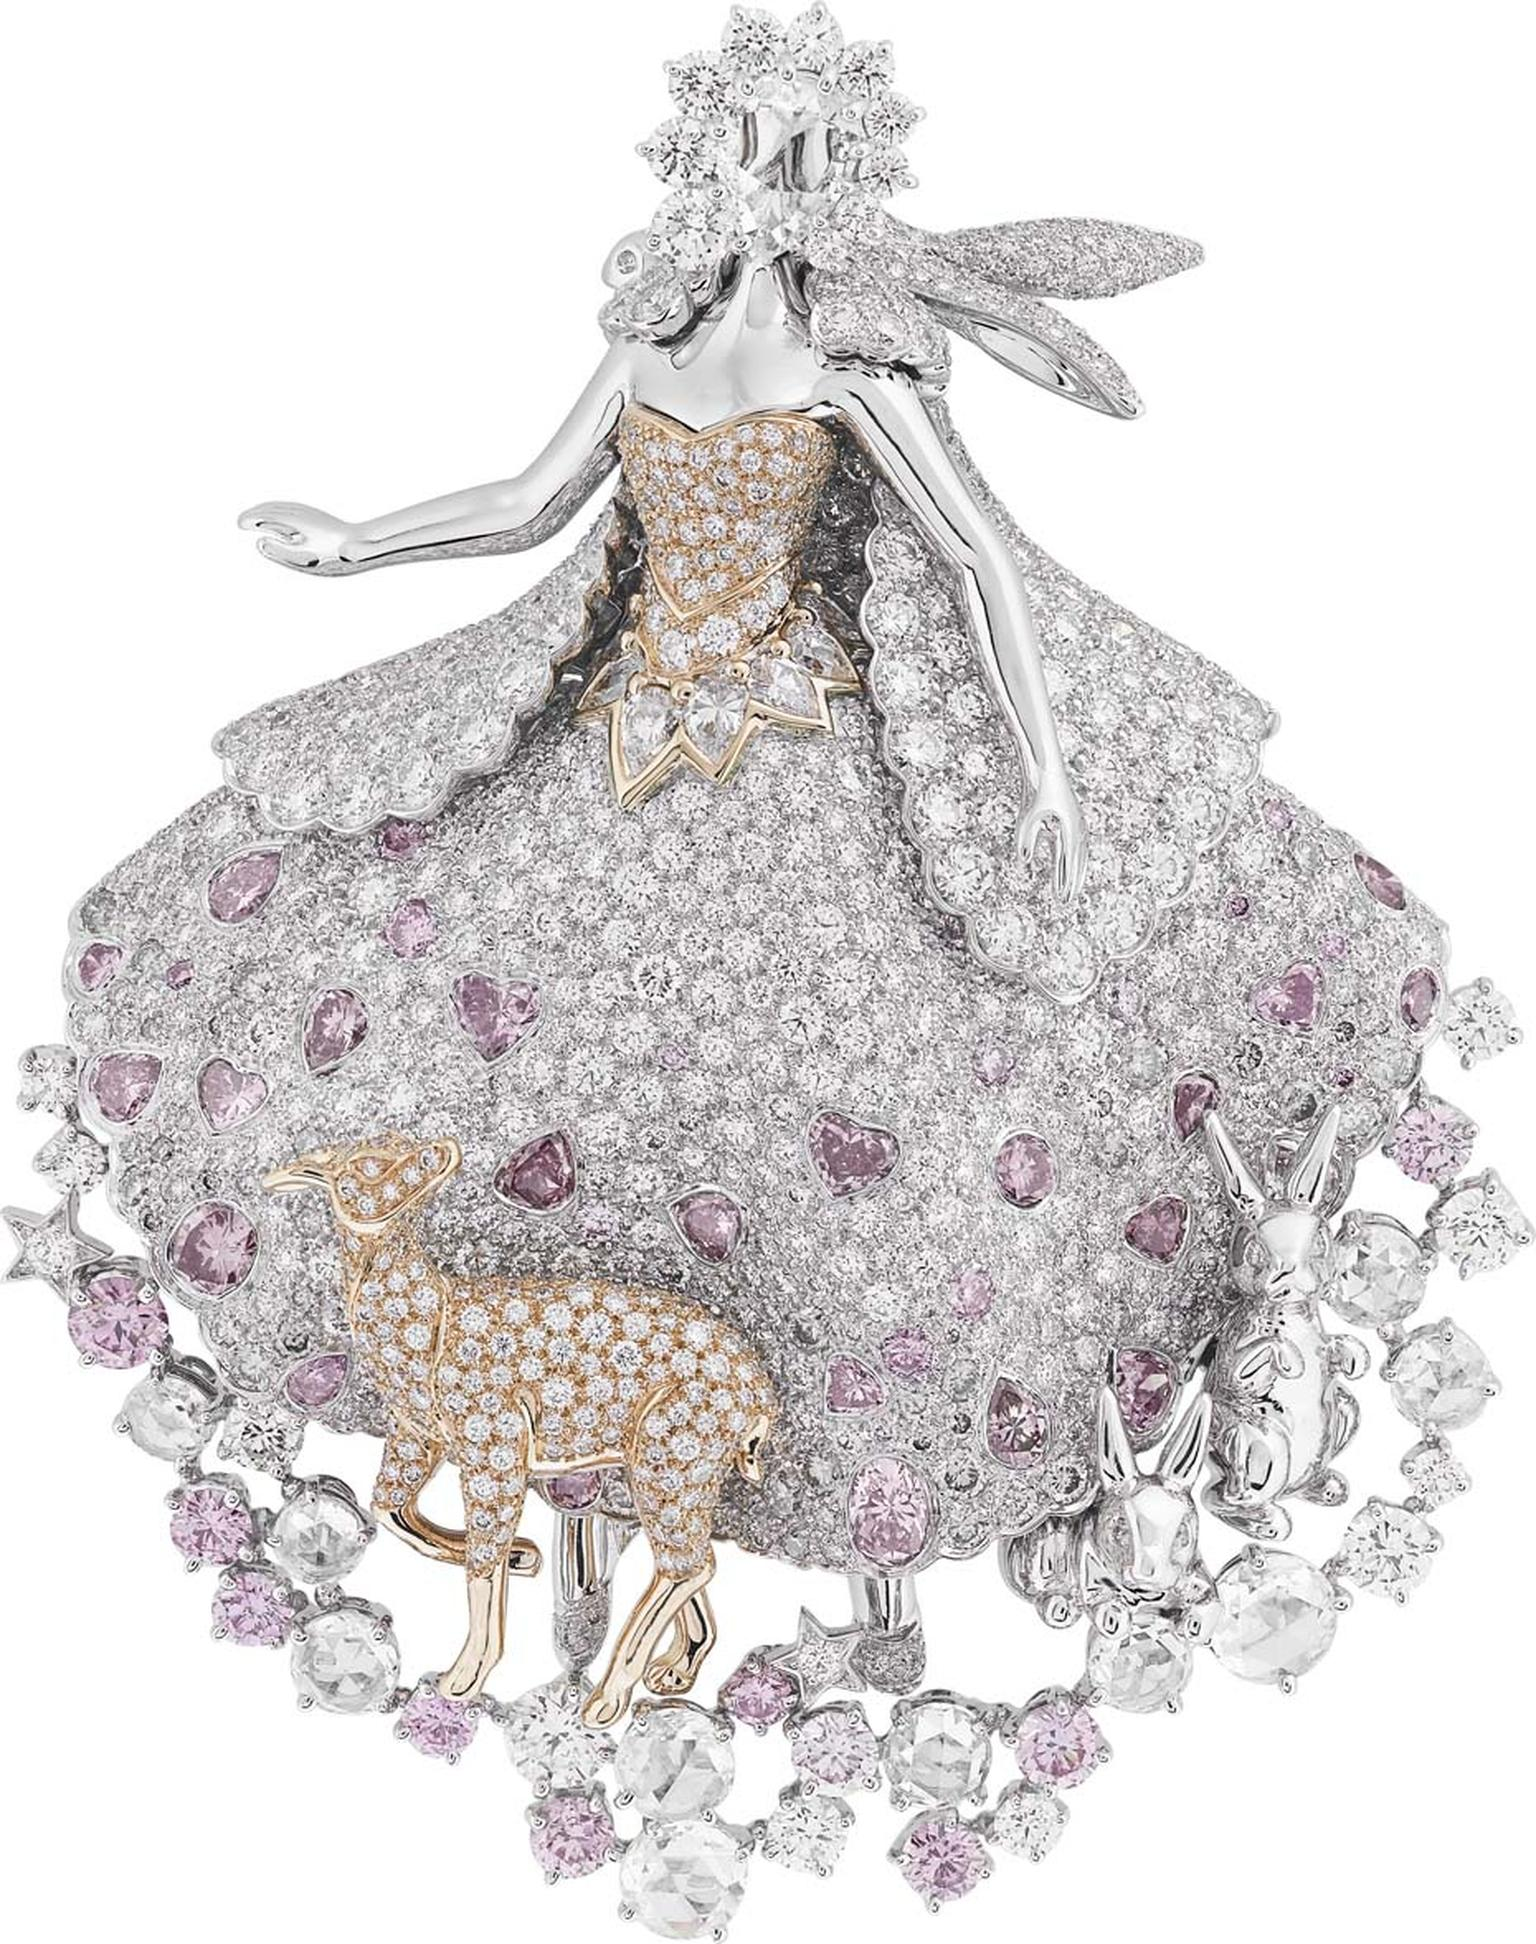 Van Cleef & Arpels Peau d'Ane Enchanted Forest collection Donkey Skin clip in white gold with round, square and pear-cut white, pink and grey diamonds.